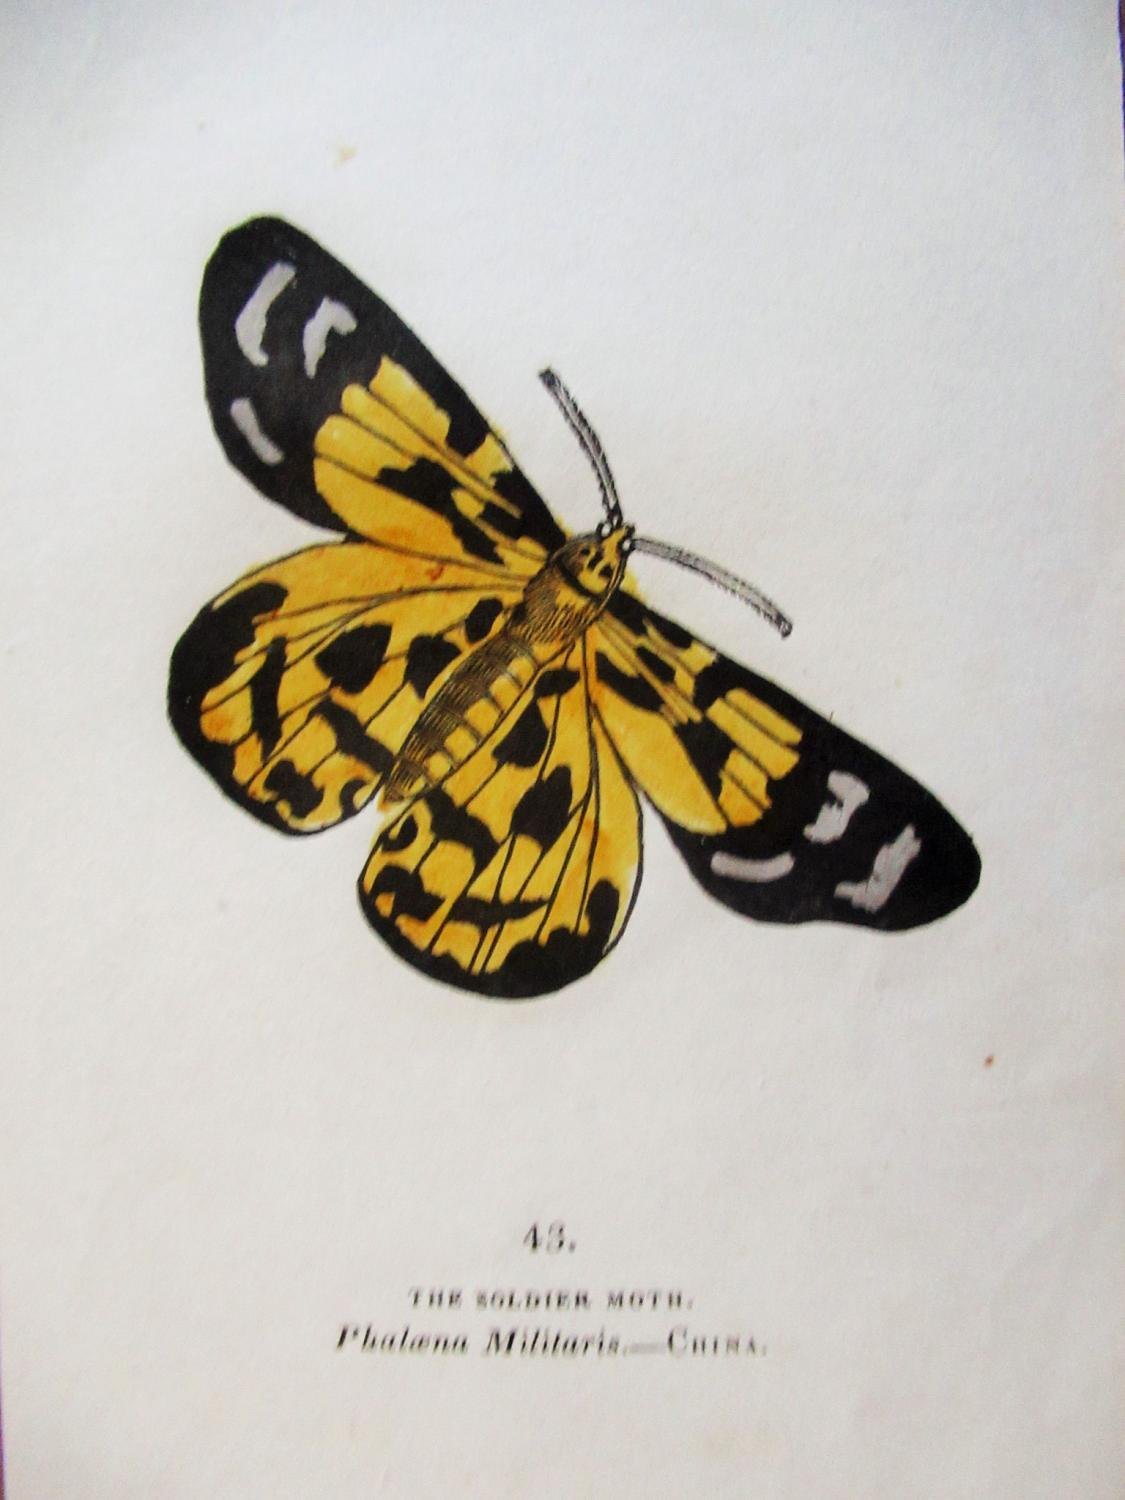 THE_SOLDIER_MOTH_-_COPPER_PLATE_ENGRAVING_1844_CAPTAIN_THOMAS_BROWN_[Very_Good]